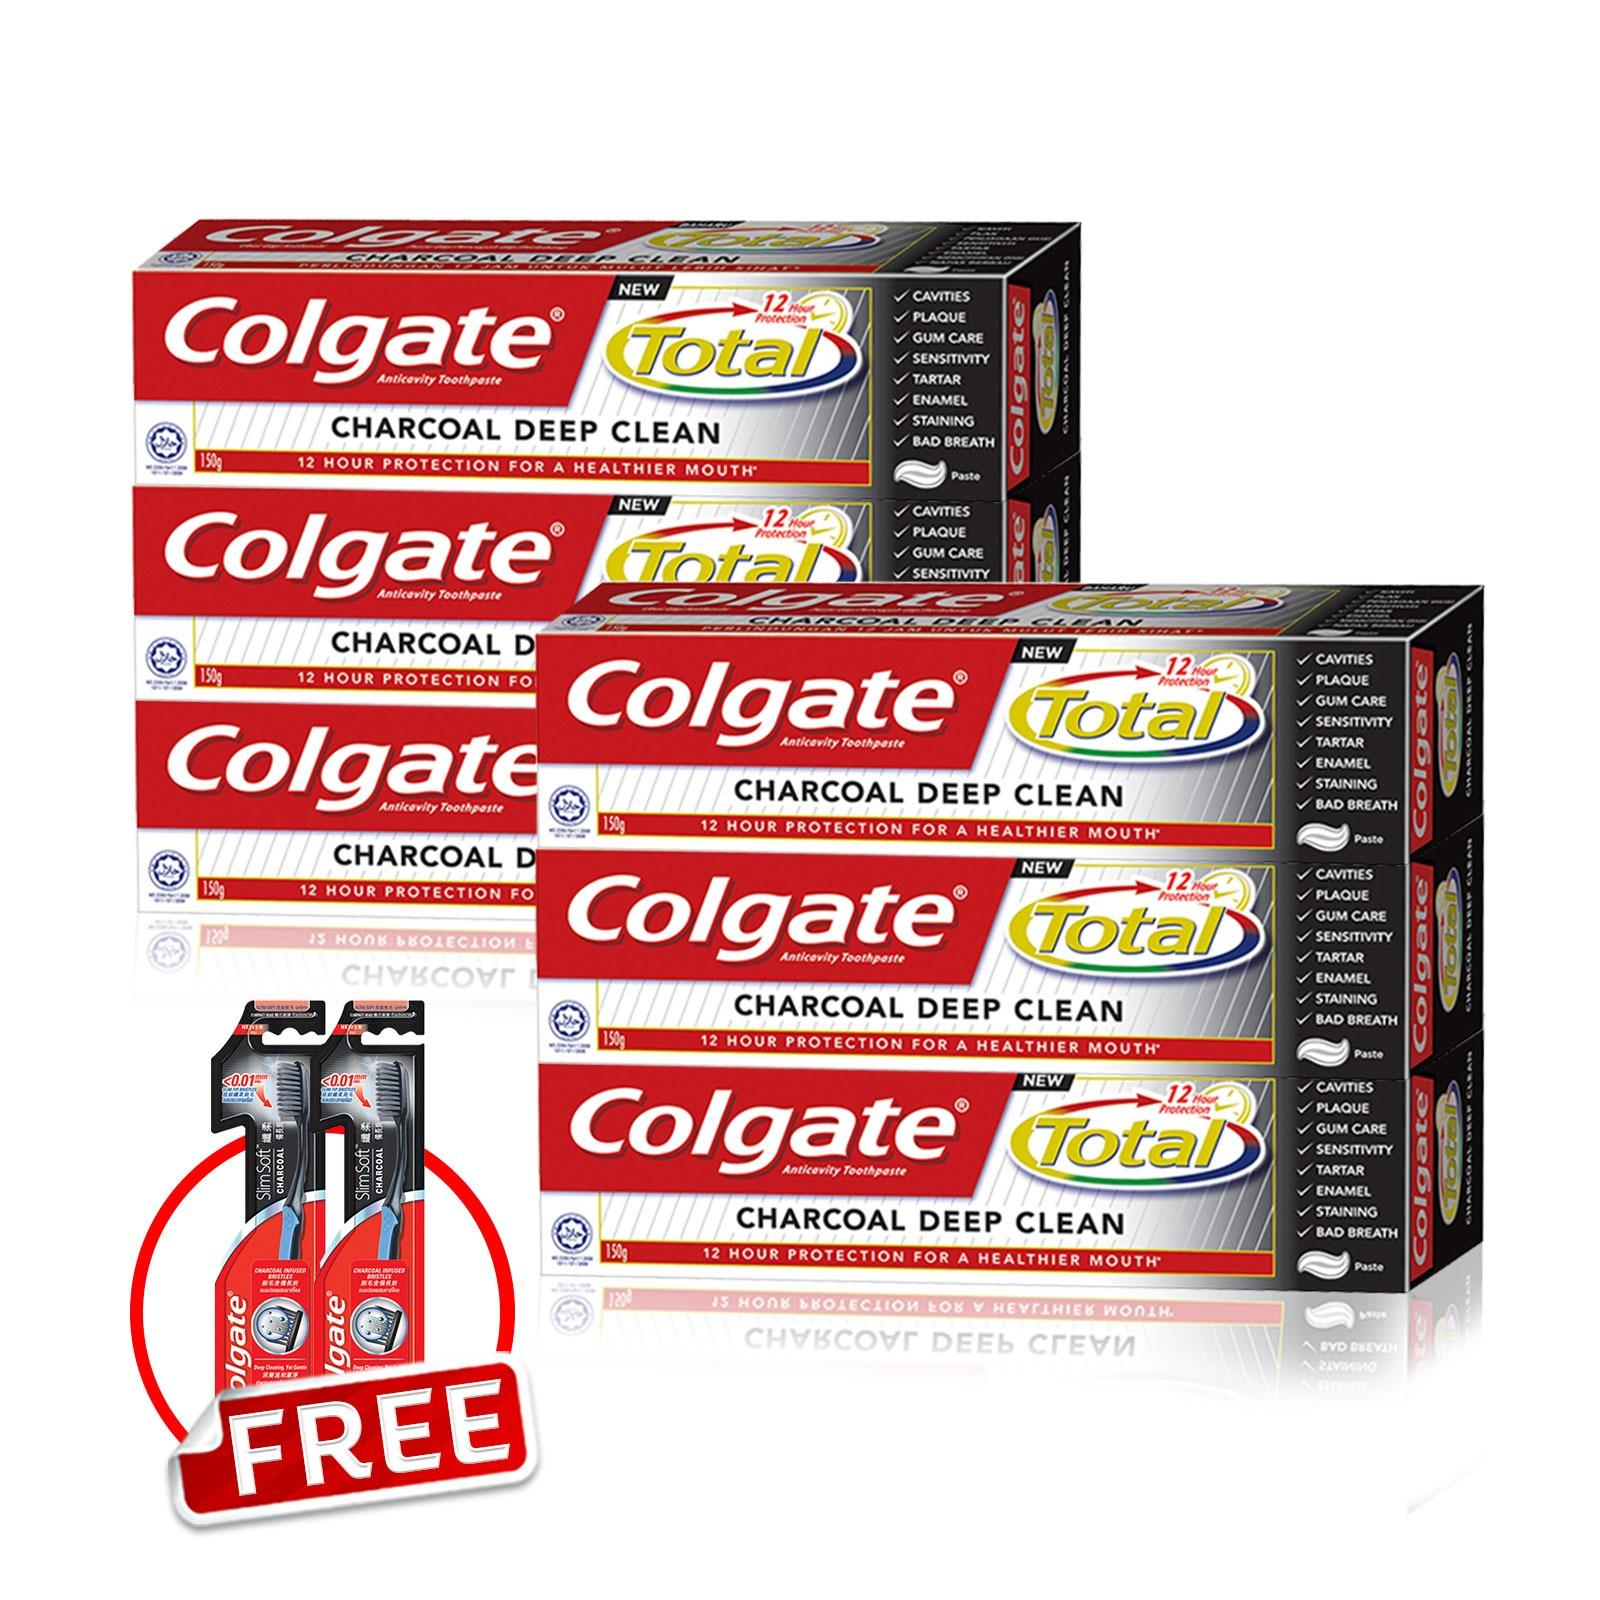 Purchase Buy 6 Colgate Total Charcoal Tooth Paste Save 40 Free 2X Slimsoft Charcoal Toothbrush Online